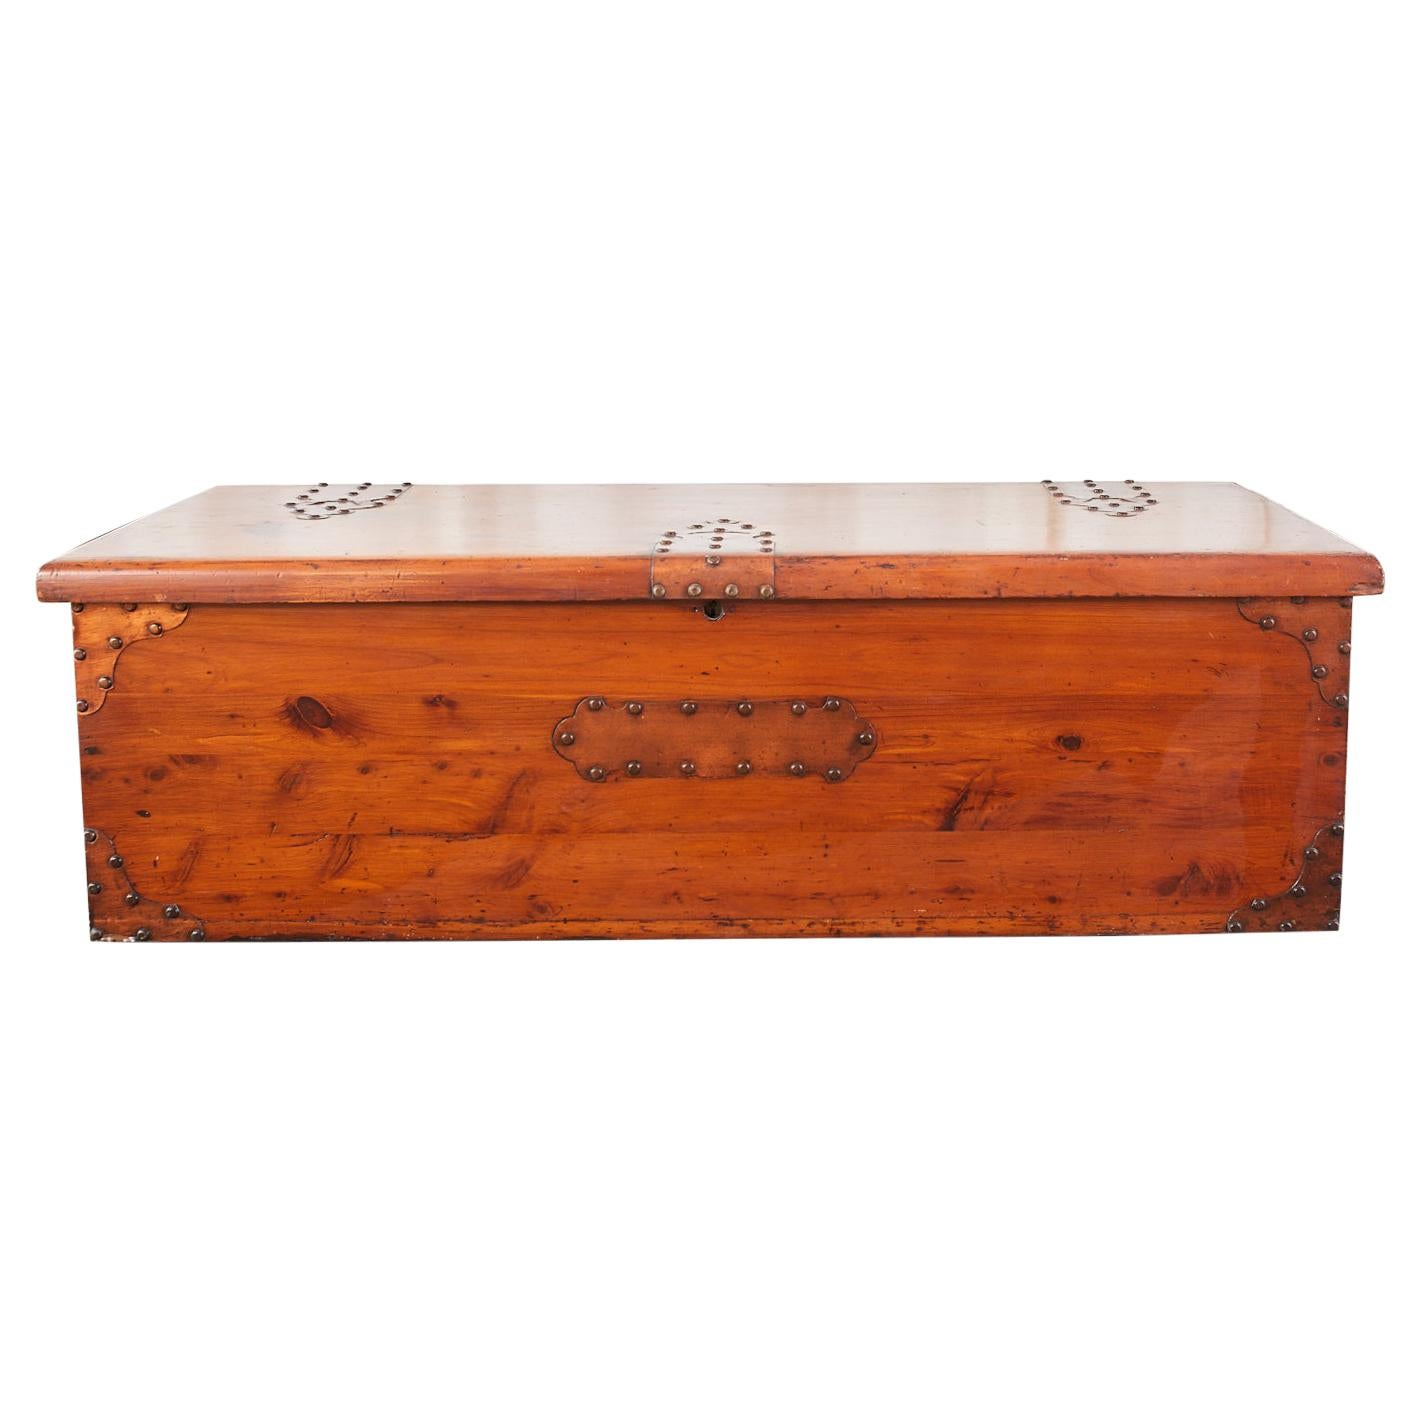 Campaign Style Cedar Blanket Chest or Coffee Table